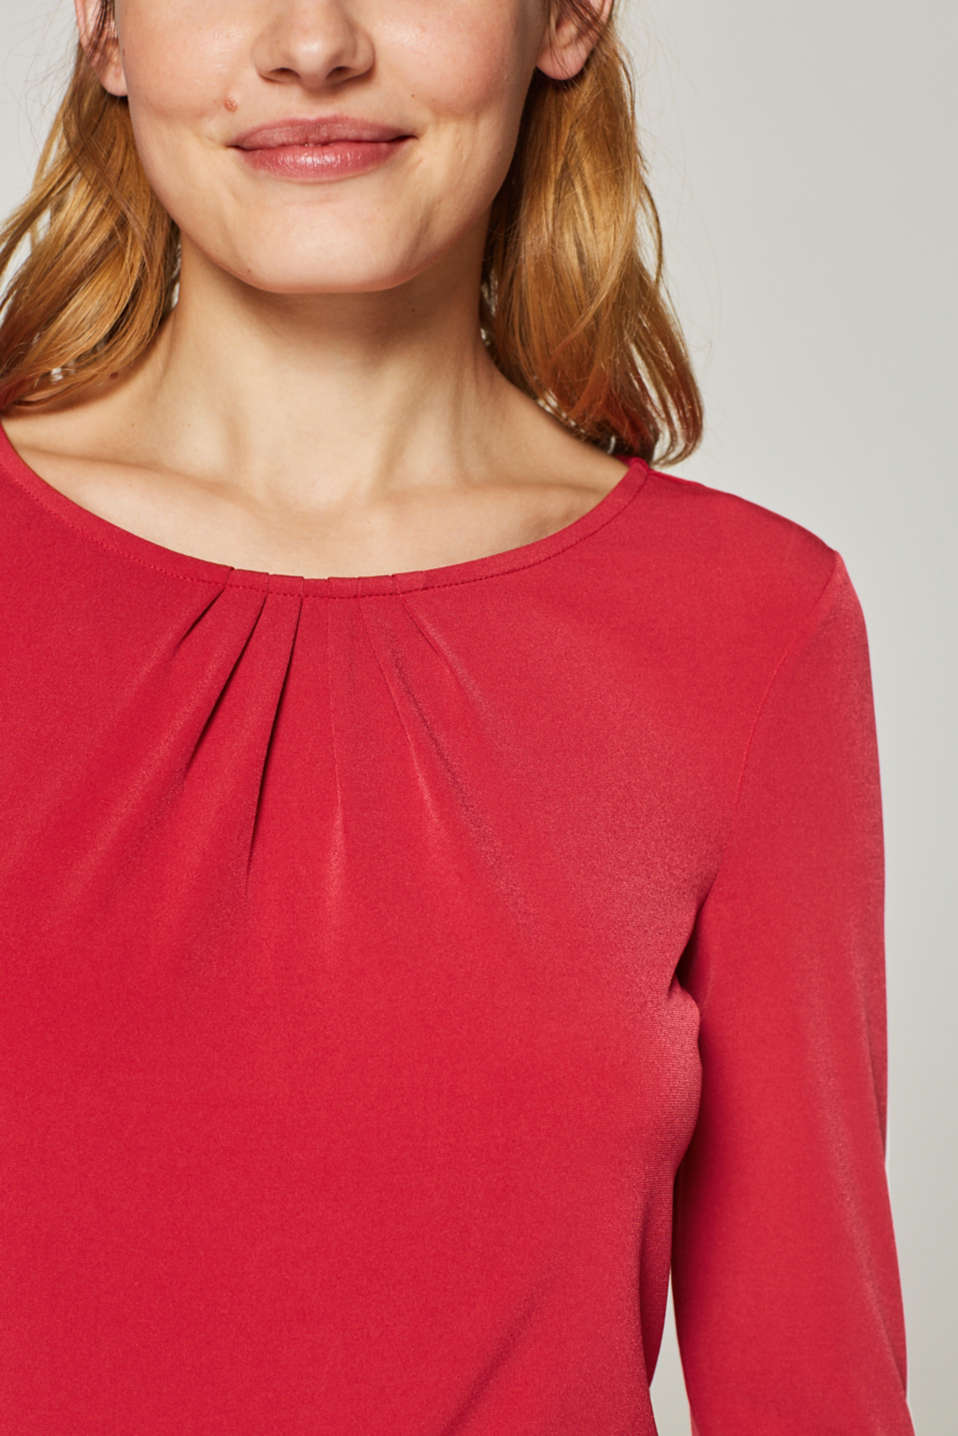 Stretch tee with a pleated neckline, DARK RED, detail image number 2